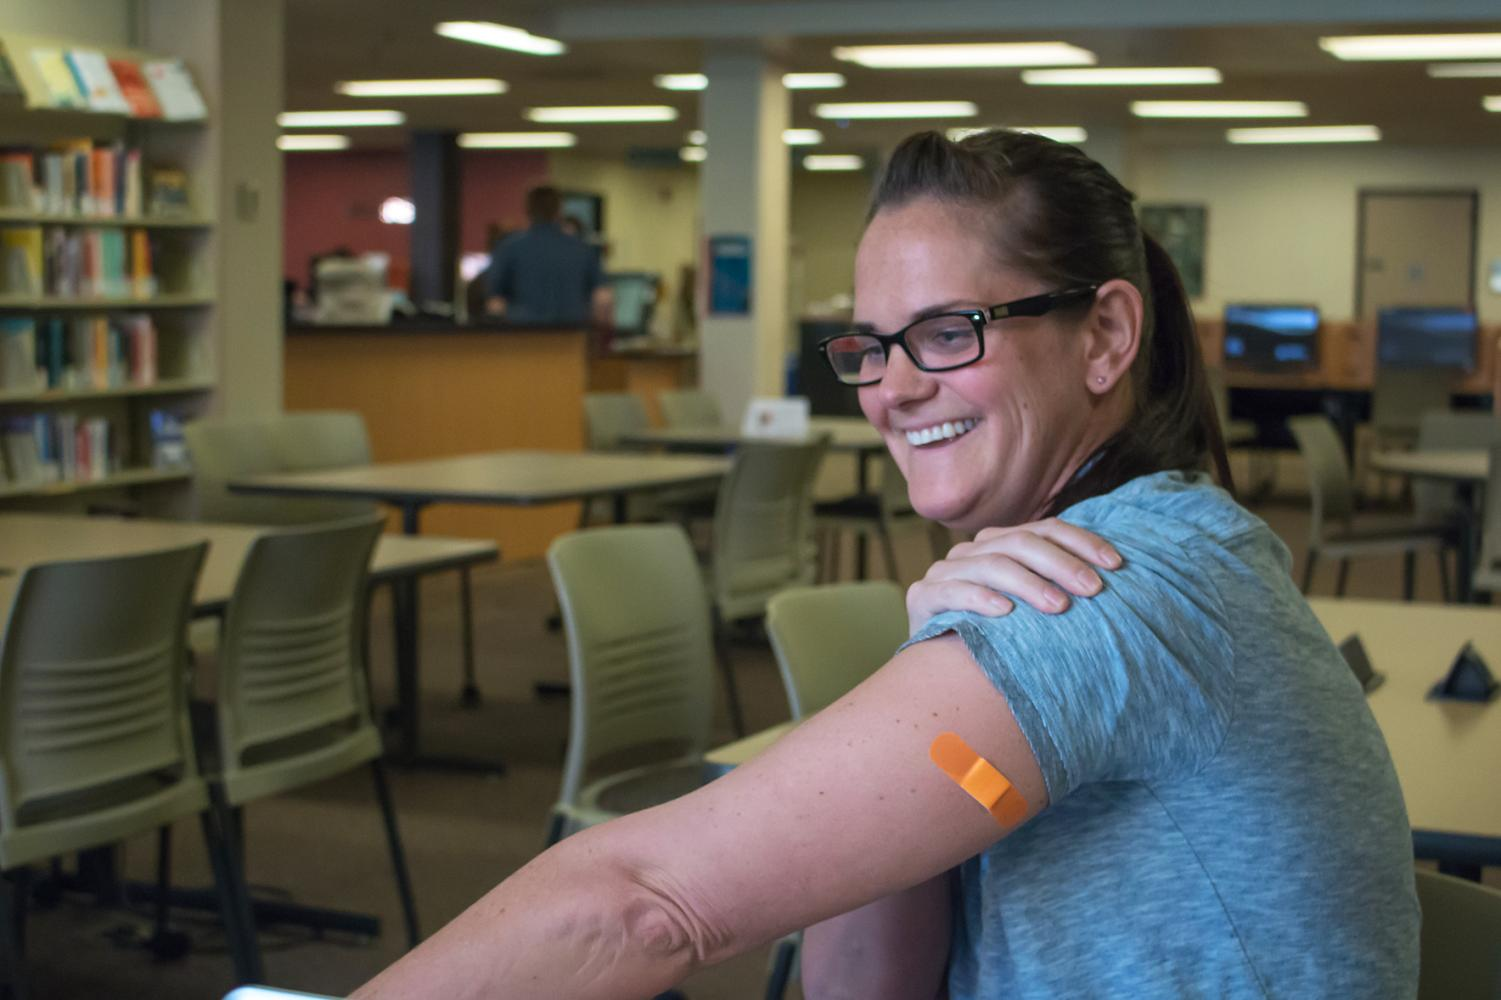 Johanna Van Dam, 34 years old, shows off her allergy shot bandage.